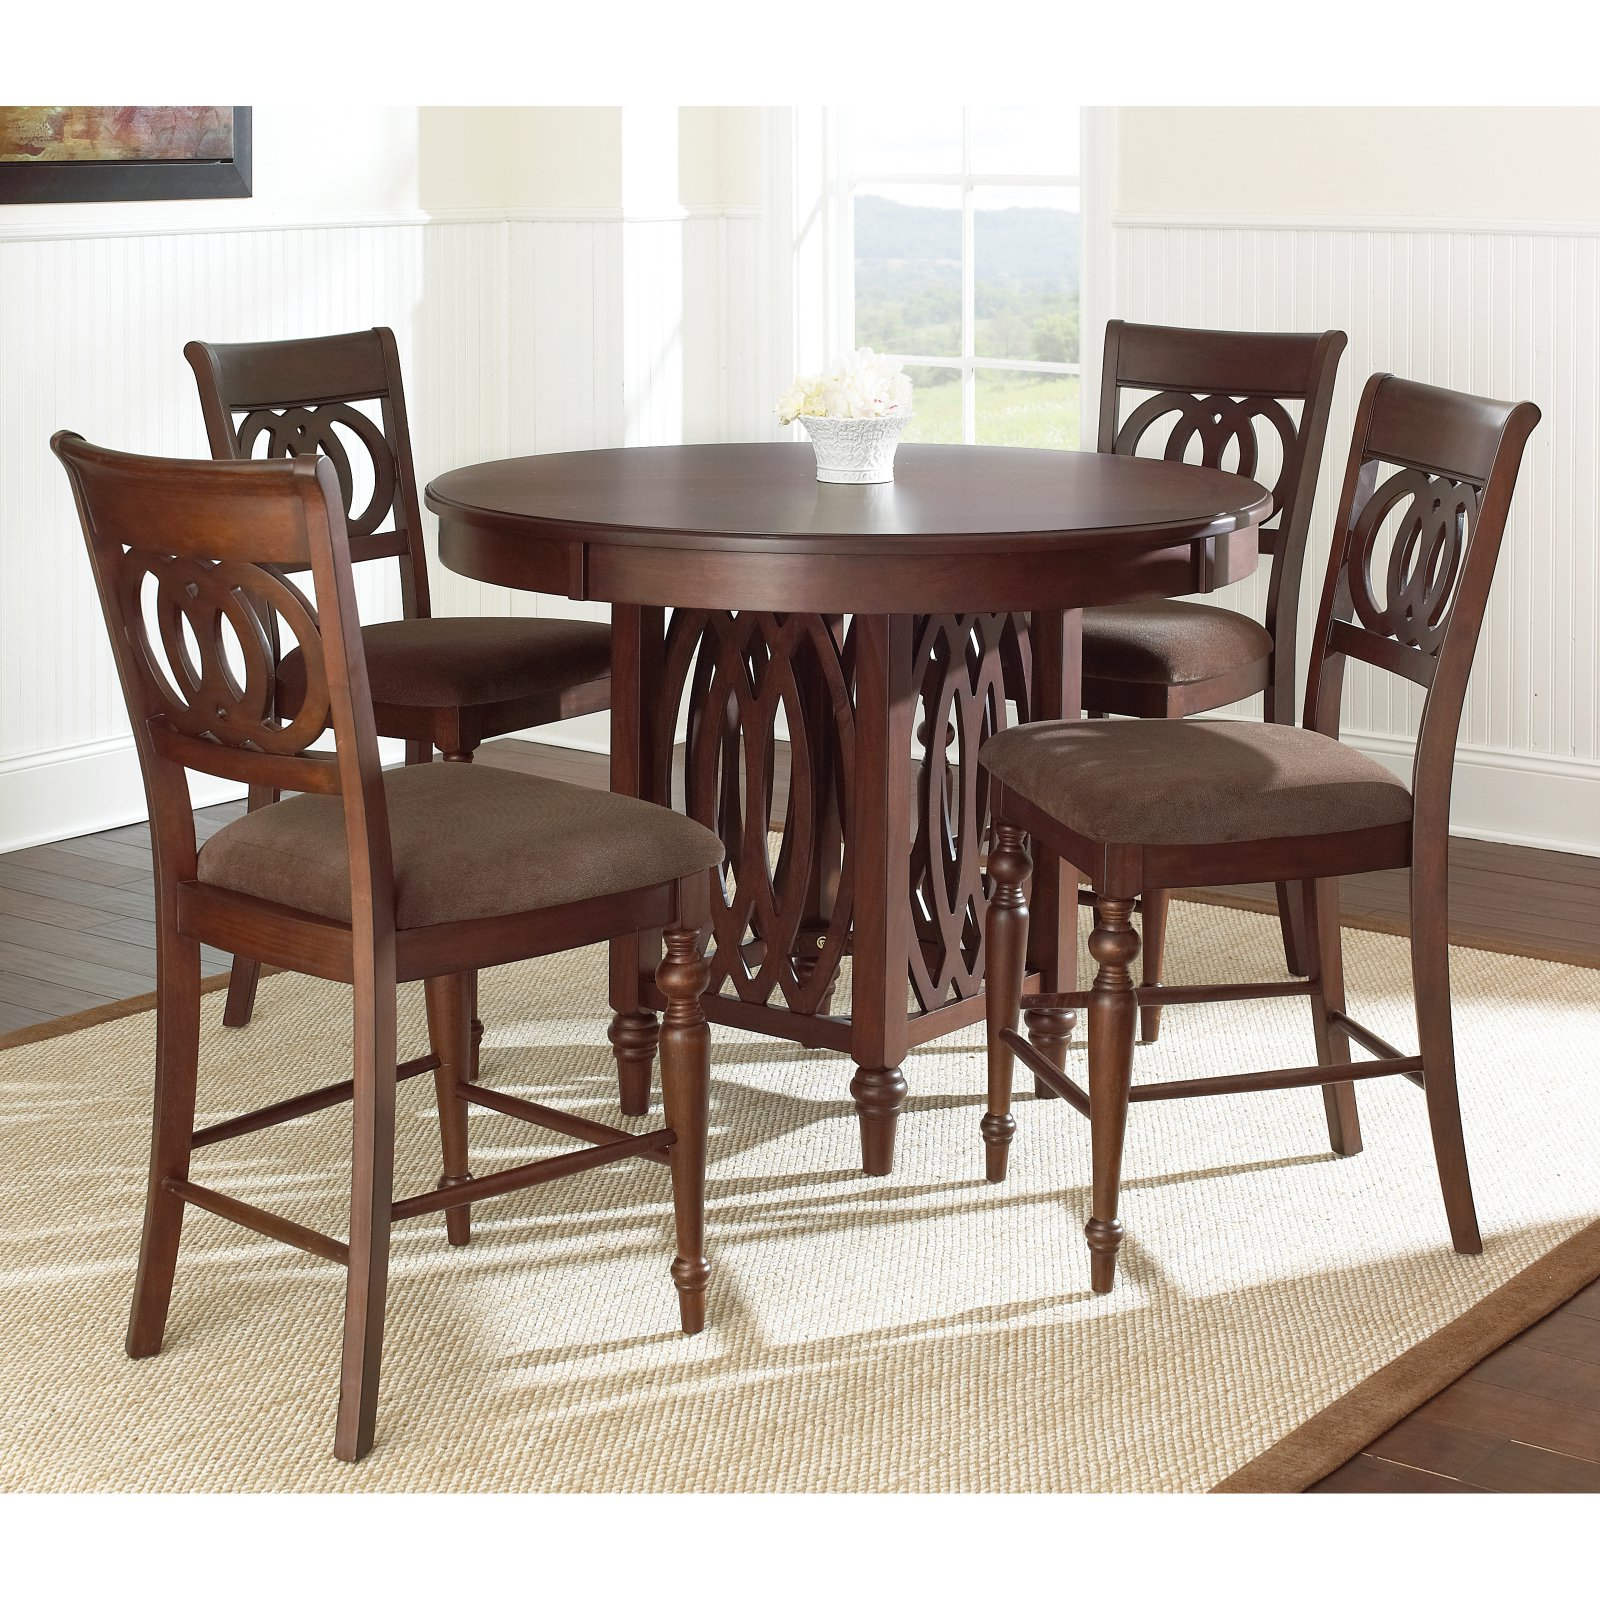 Steve Silver Dolly 5 Piece Counter Height Dining Table Set